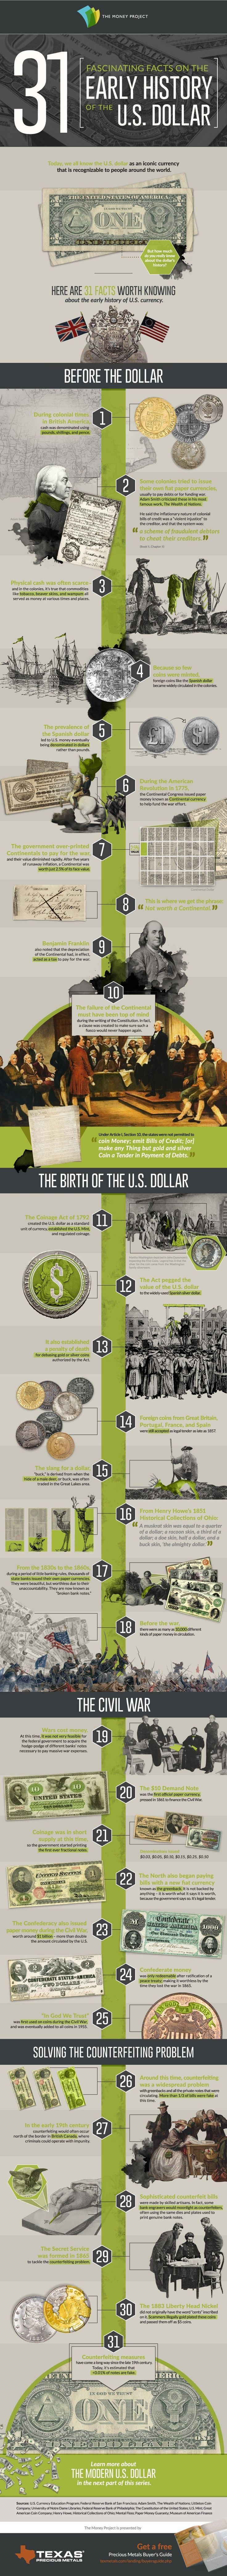 31 Fascinating Facts on the Early History of the U.S. Dollar